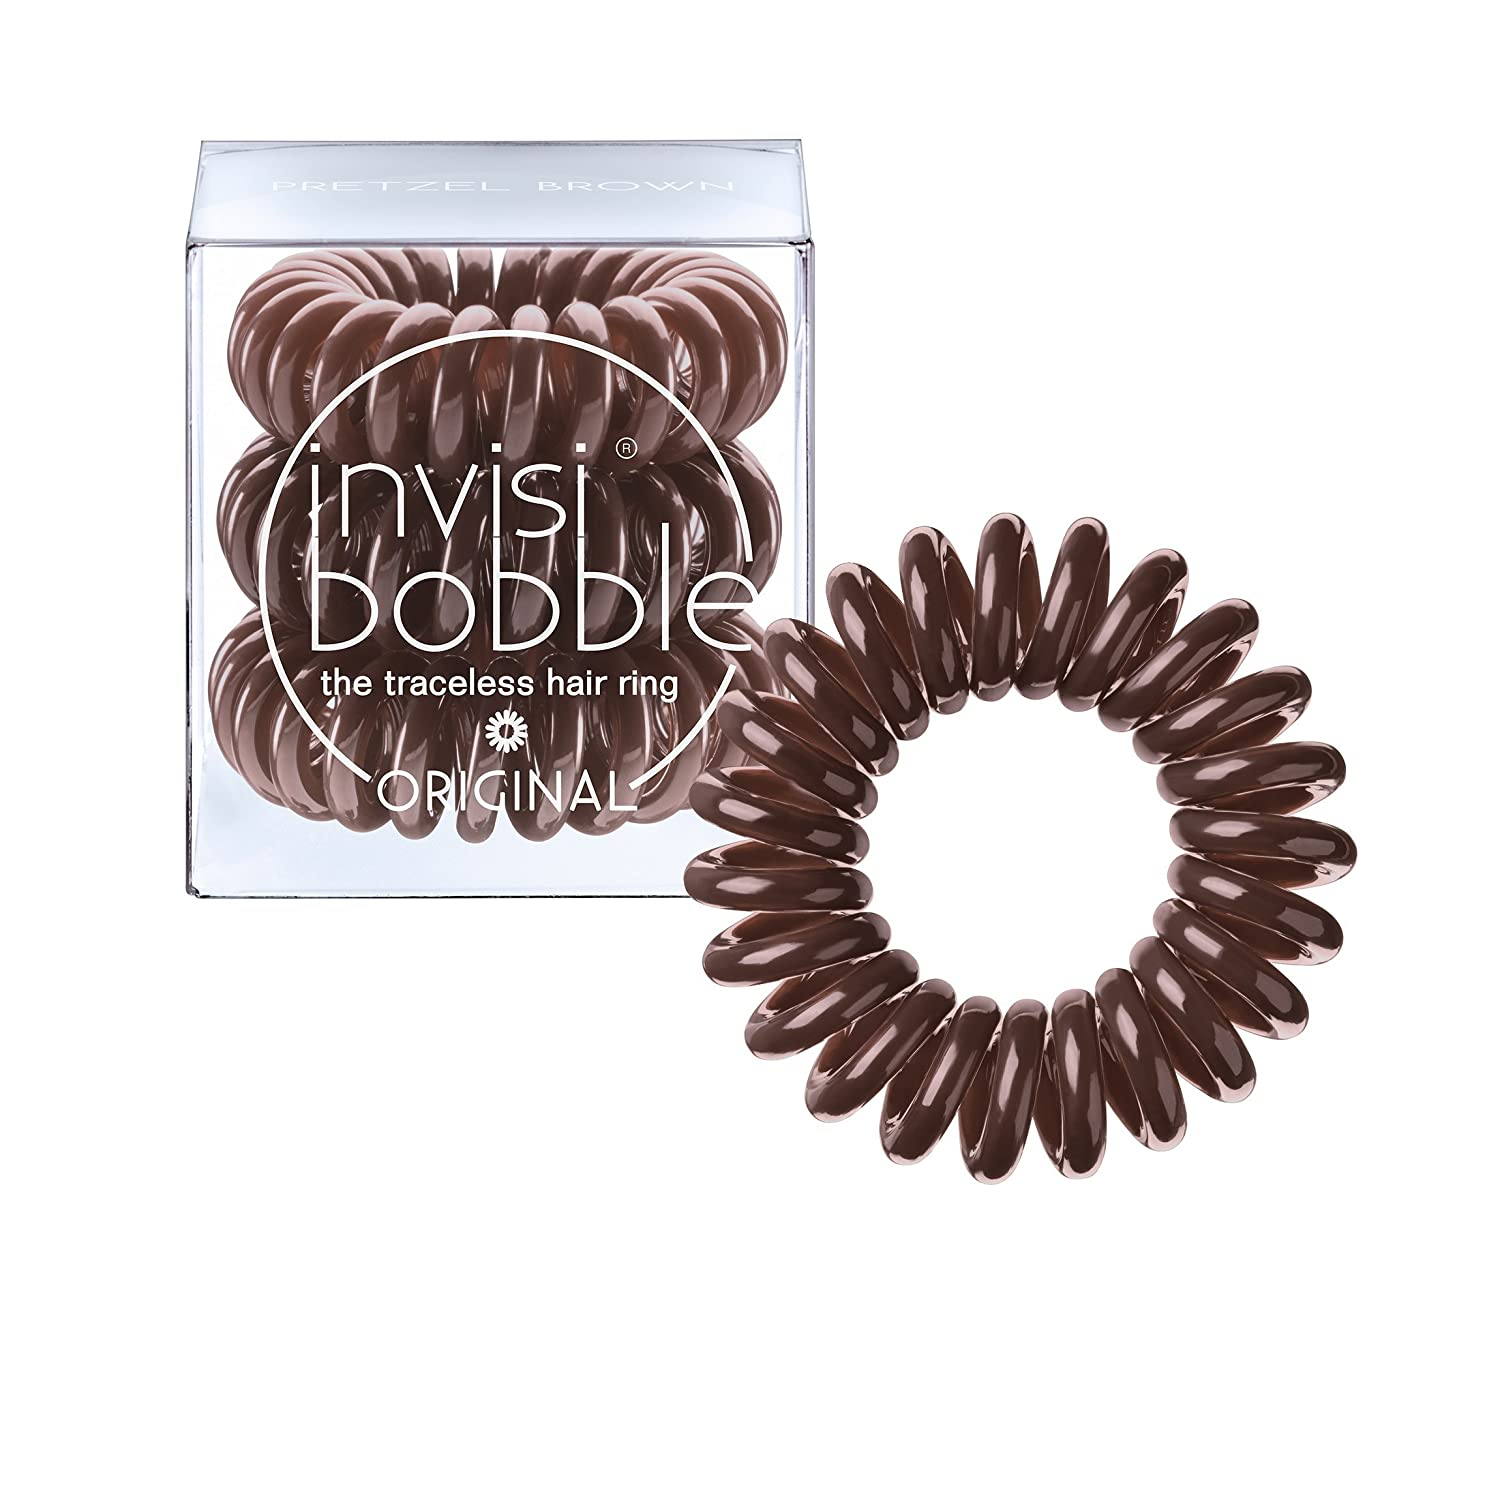 invisibobble ORIGINAL Pretzel Brown, the traceless and original spiral shaped hair ring, color: brown, 3 hair ties per packaging invisibobble GmbH IB-OR-PC10002